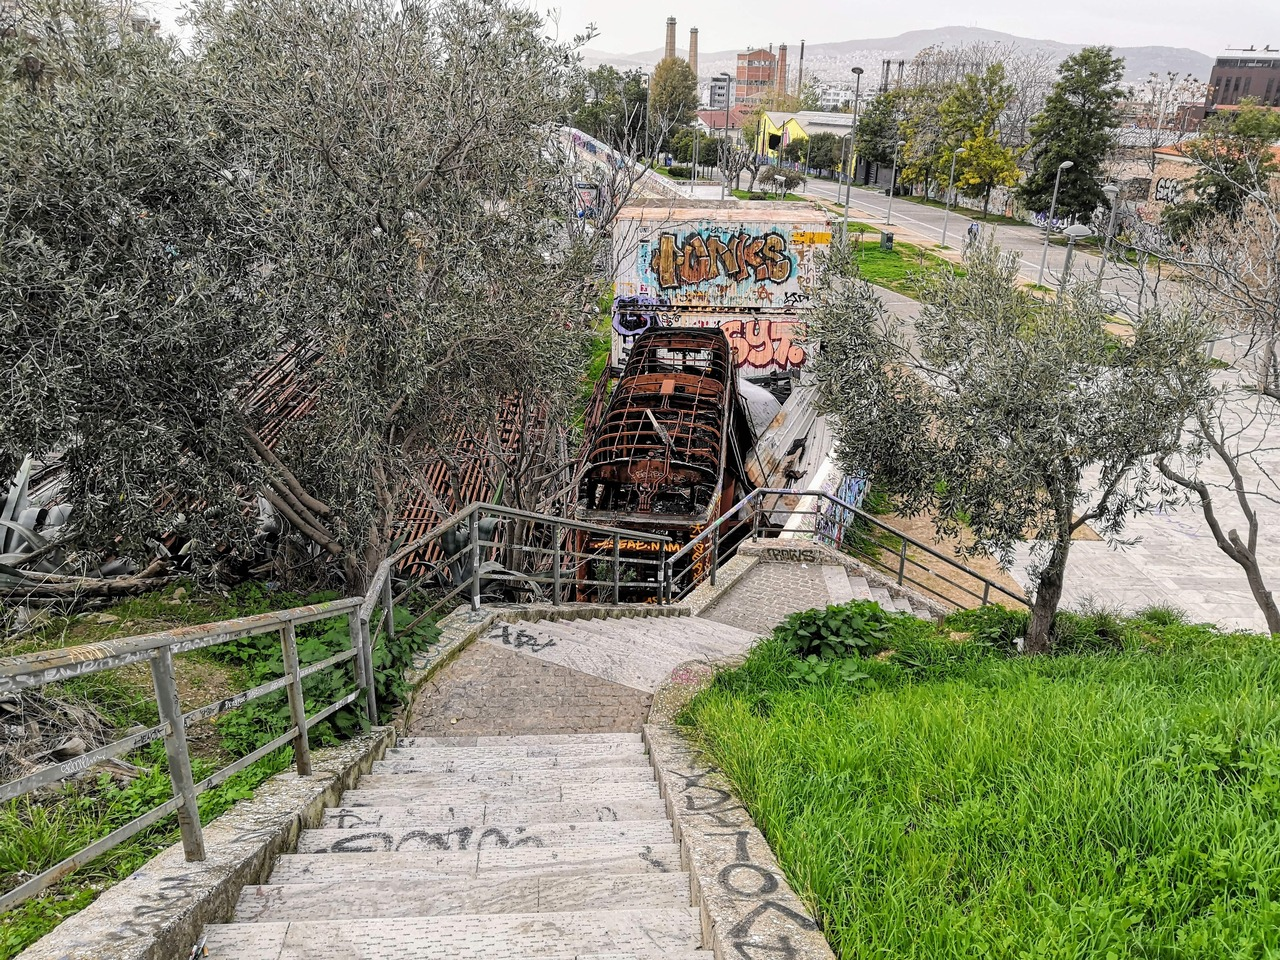 Small hill downward pathway